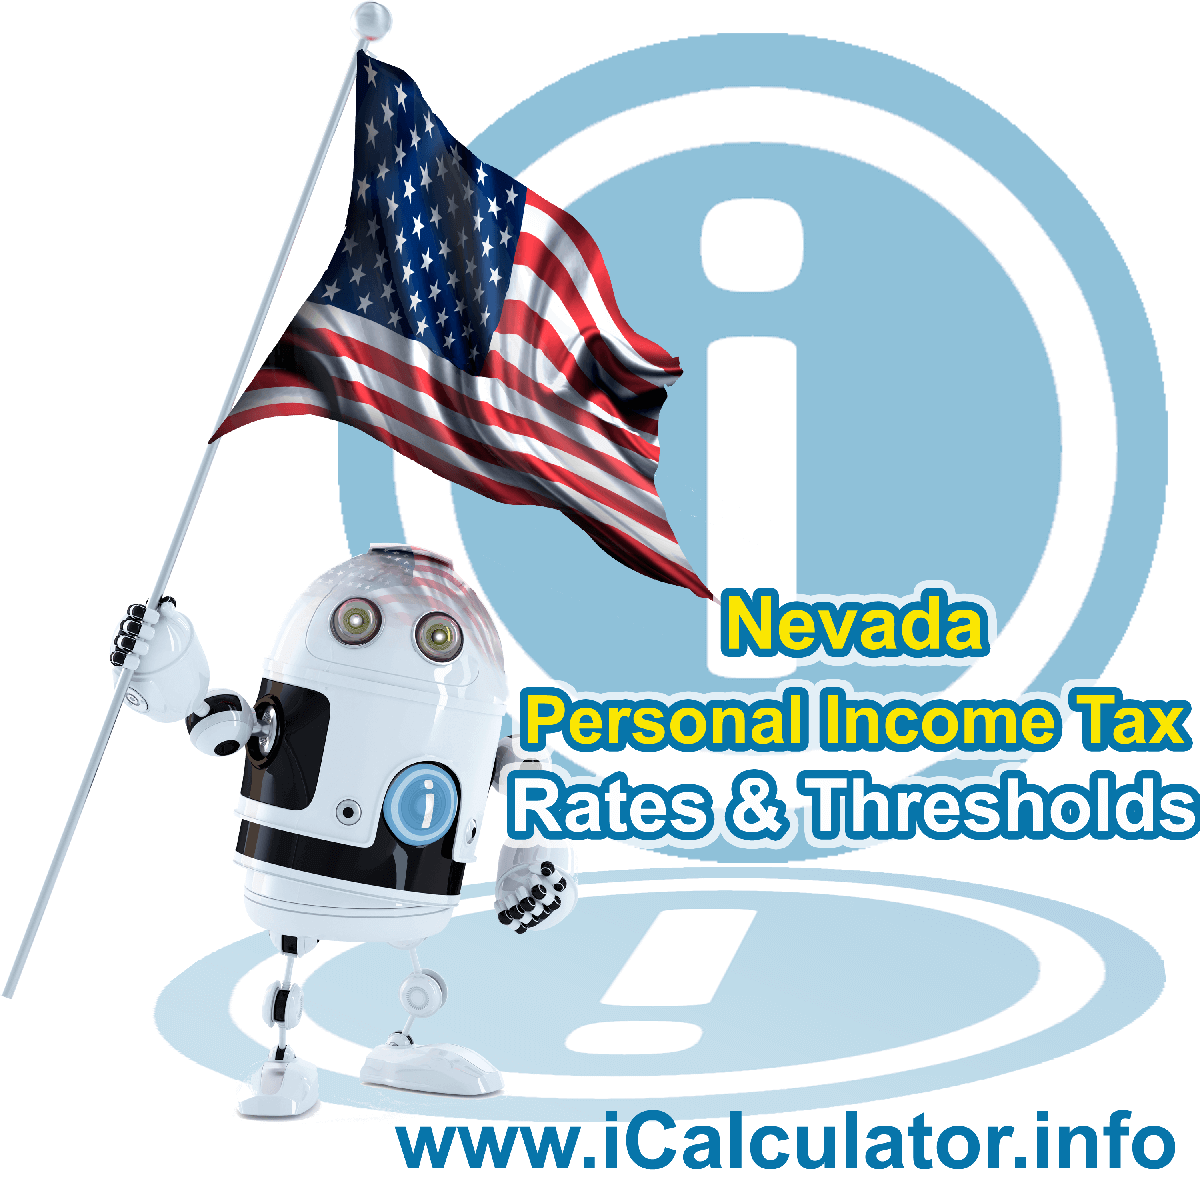 Nevada State Tax Tables 2014. This image displays details of the Nevada State Tax Tables for the 2014 tax return year which is provided in support of the 2014 US Tax Calculator